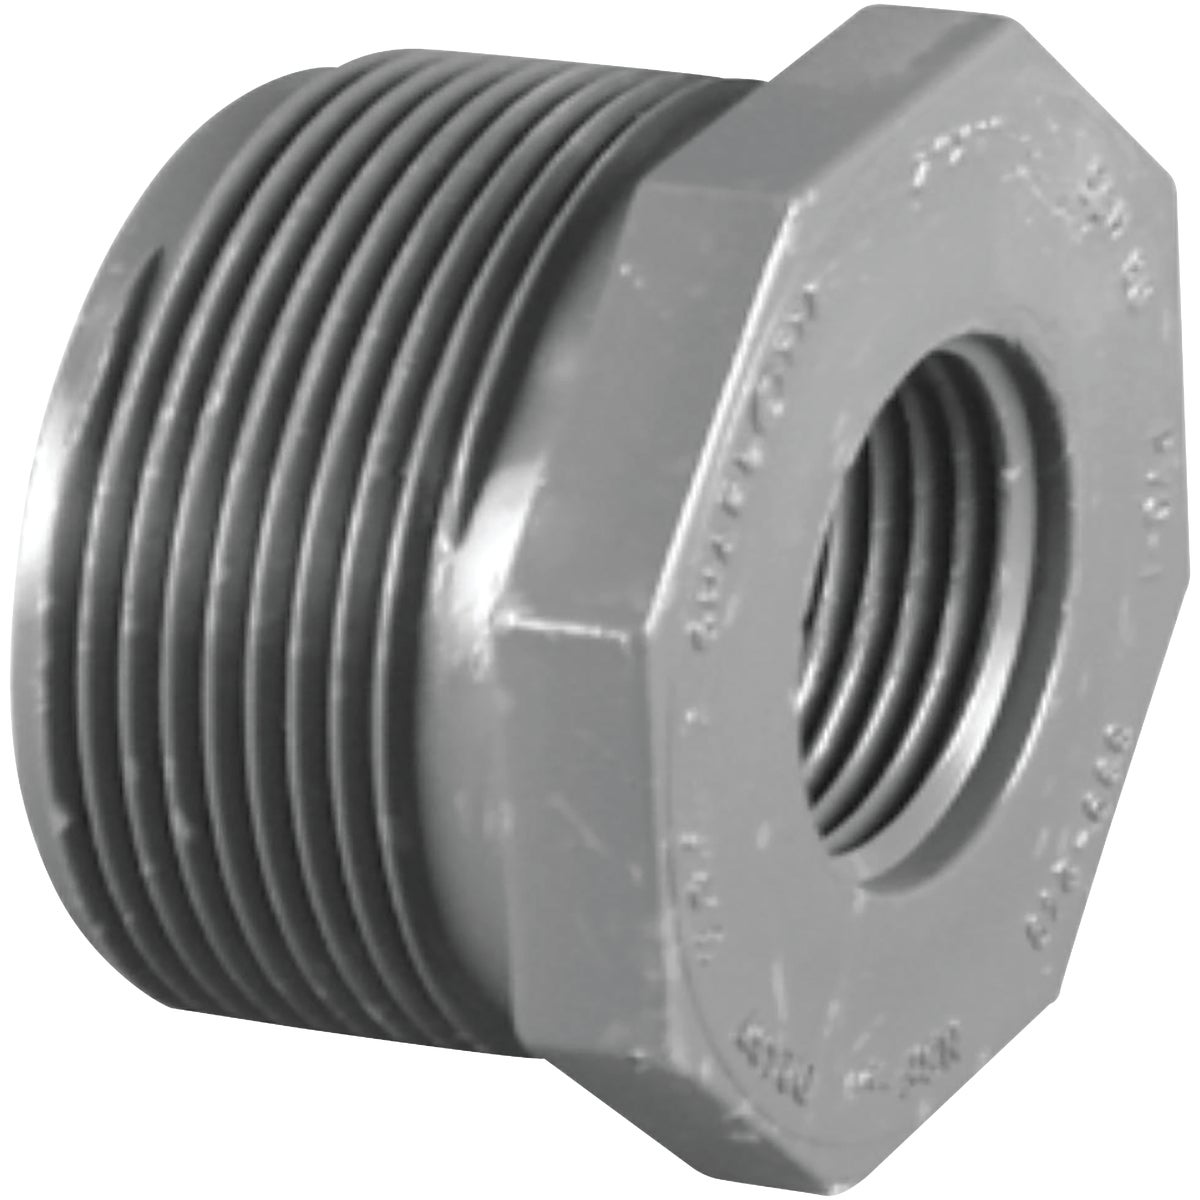 1X3/4 MXF SCH80 BUSHING - 343178 by Genova Inc